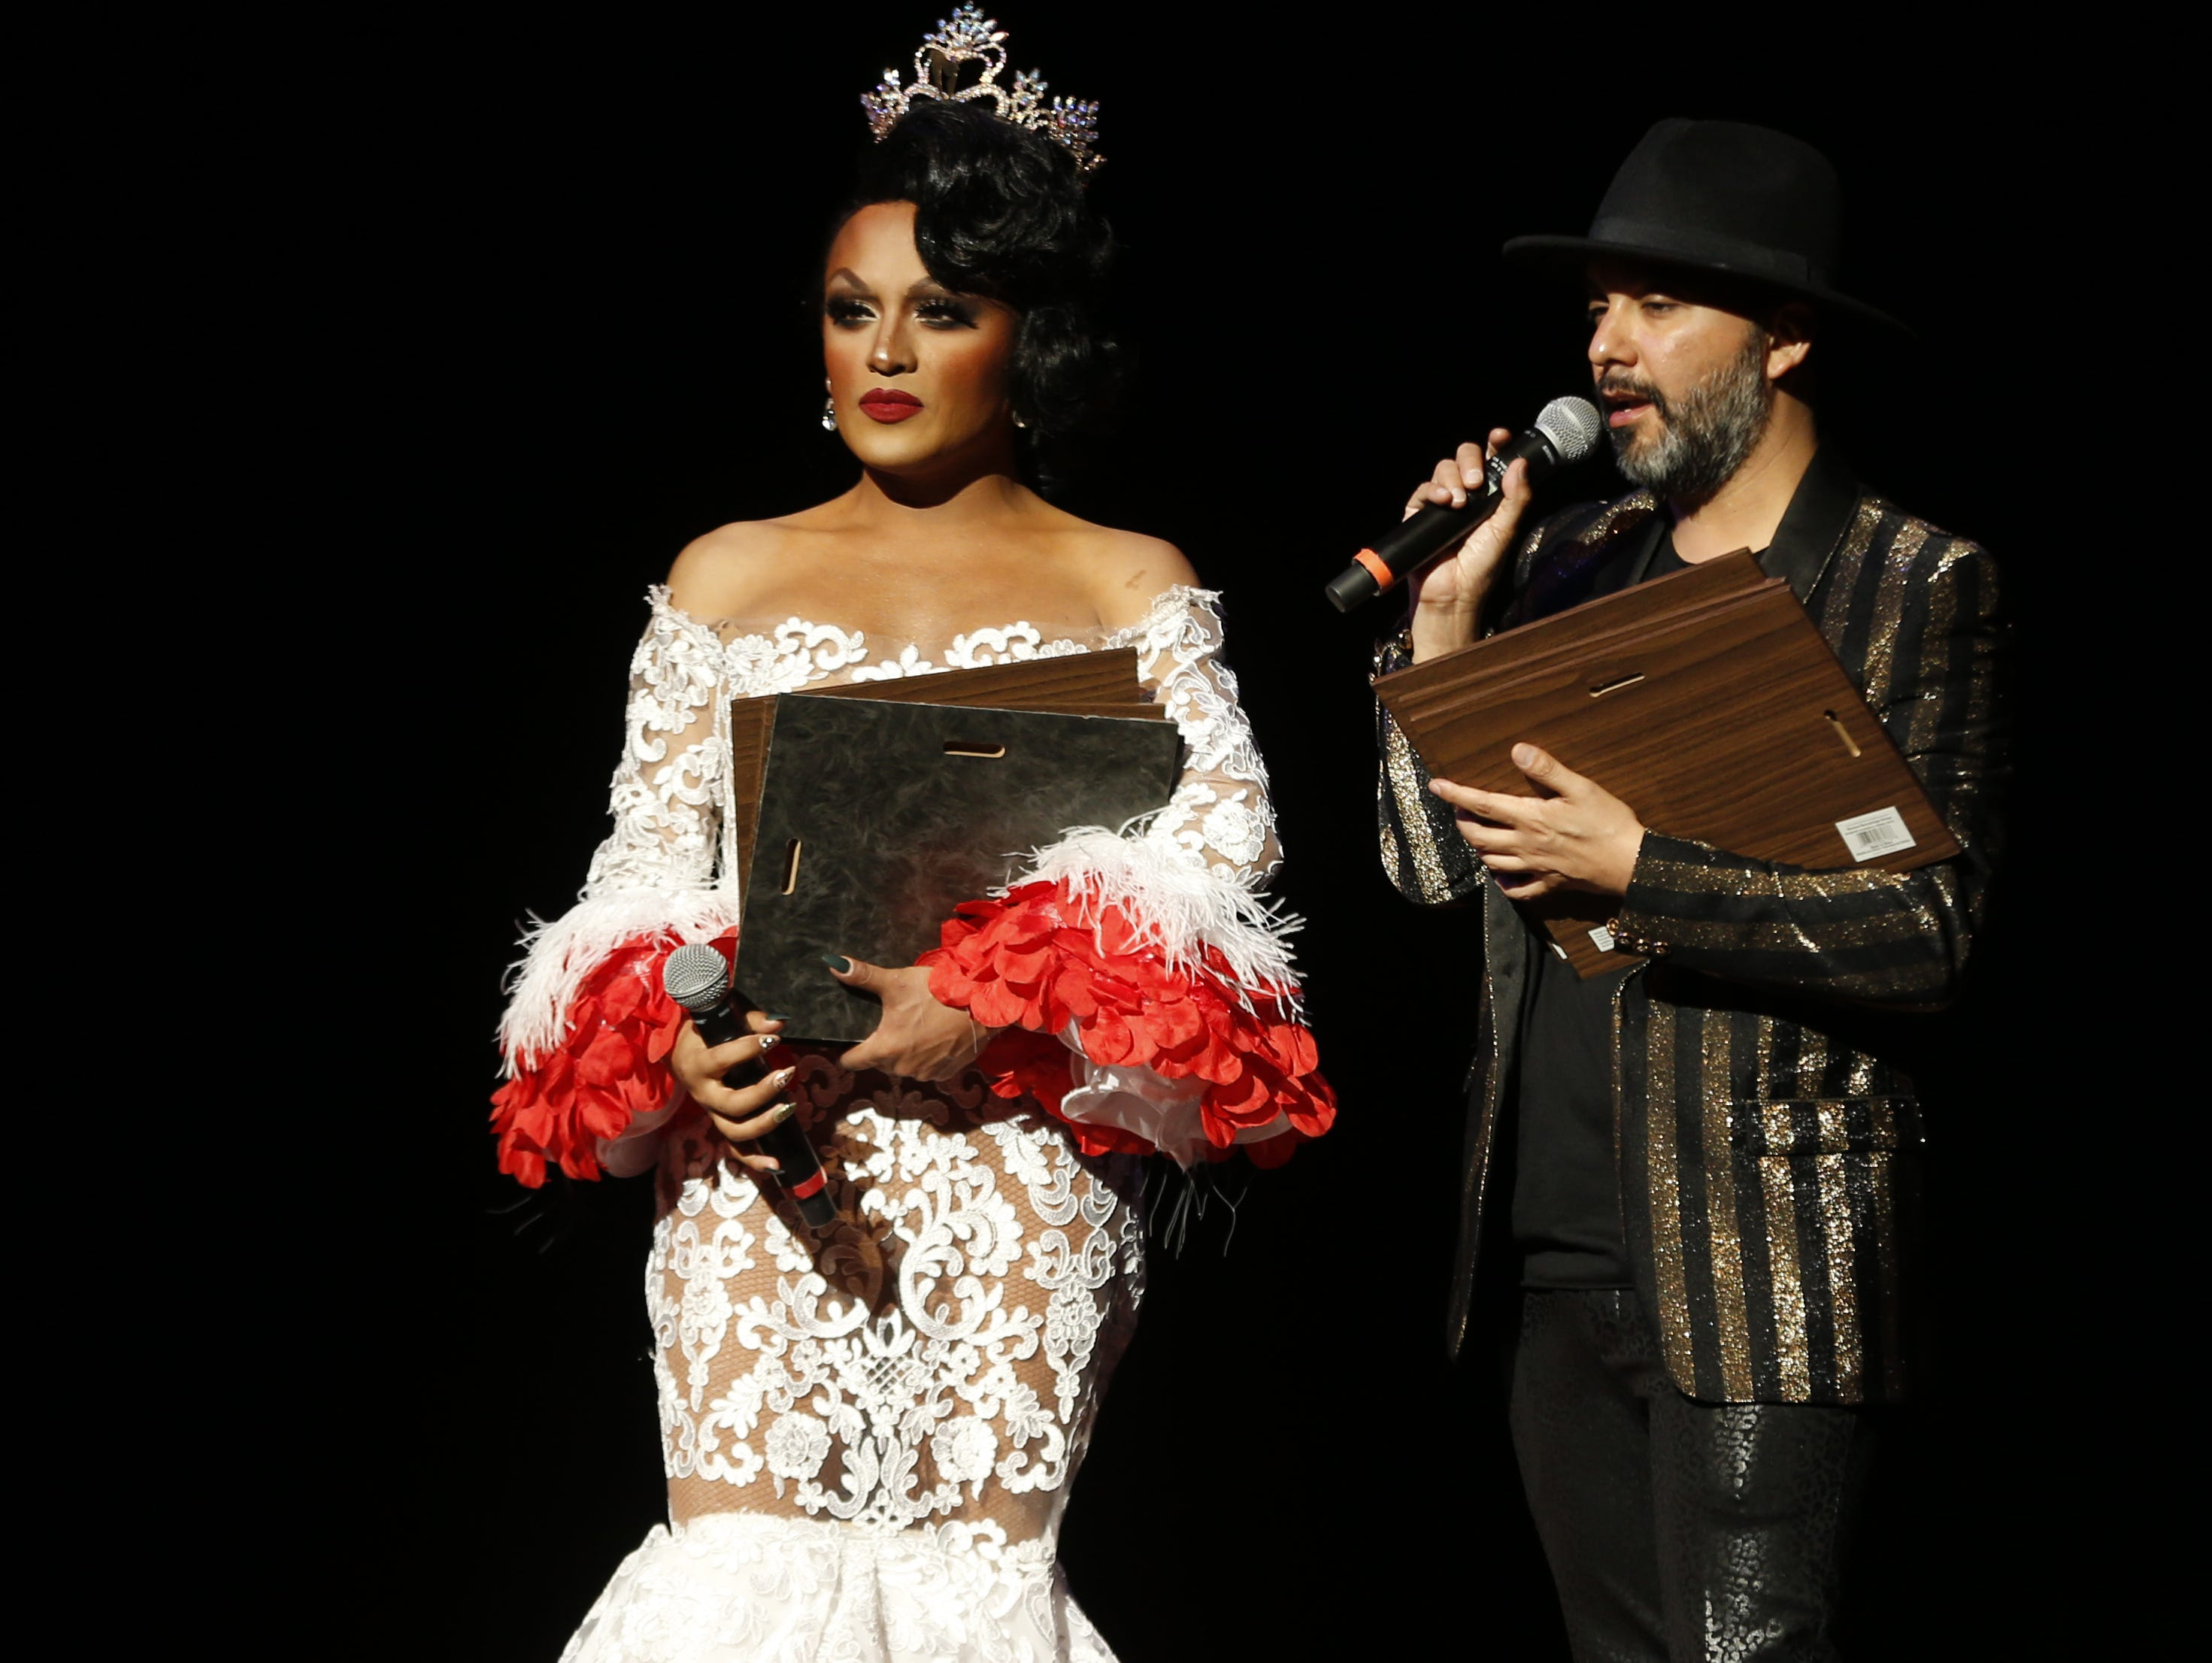 Miss Gay Arizona America 2018 Adriana Galliano (L) and Daniel Eckstrom give out awards during the Miss Gay Arizona America pageant 2019 at Tempe Center for the Arts on May 11, 2019.